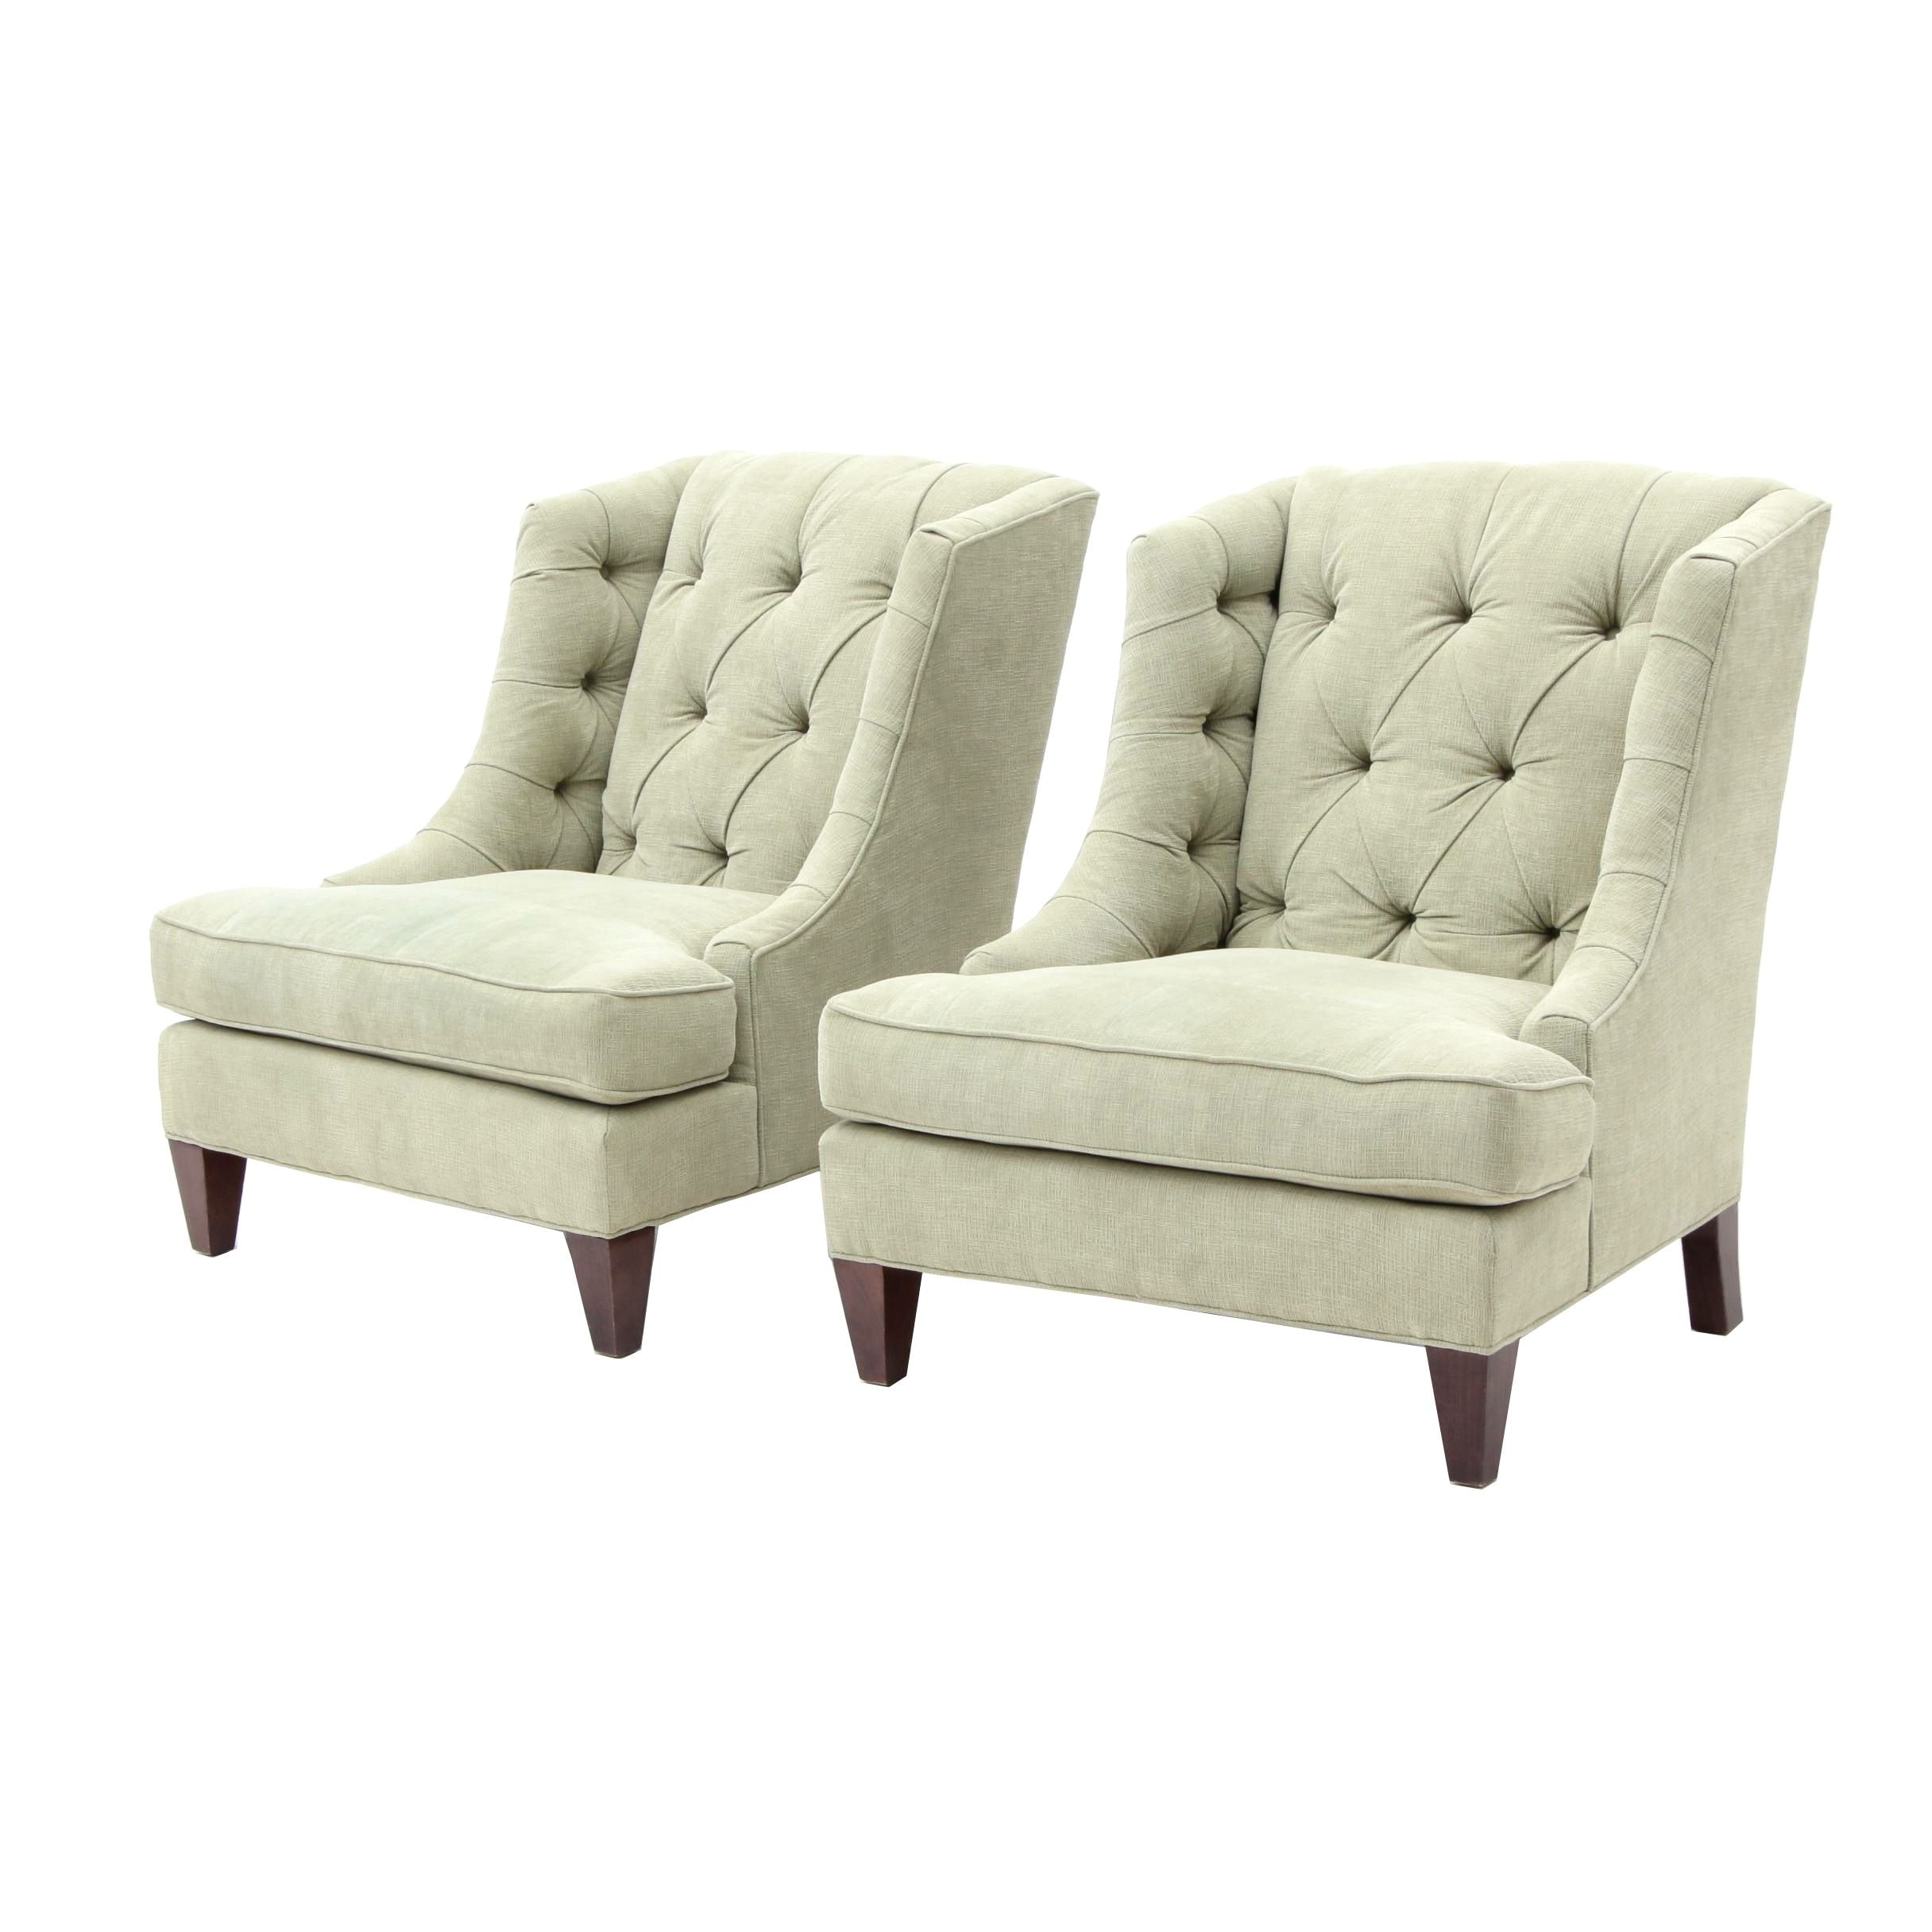 Two Light Green Upholstered Armchairs By Sam Moore Furniture